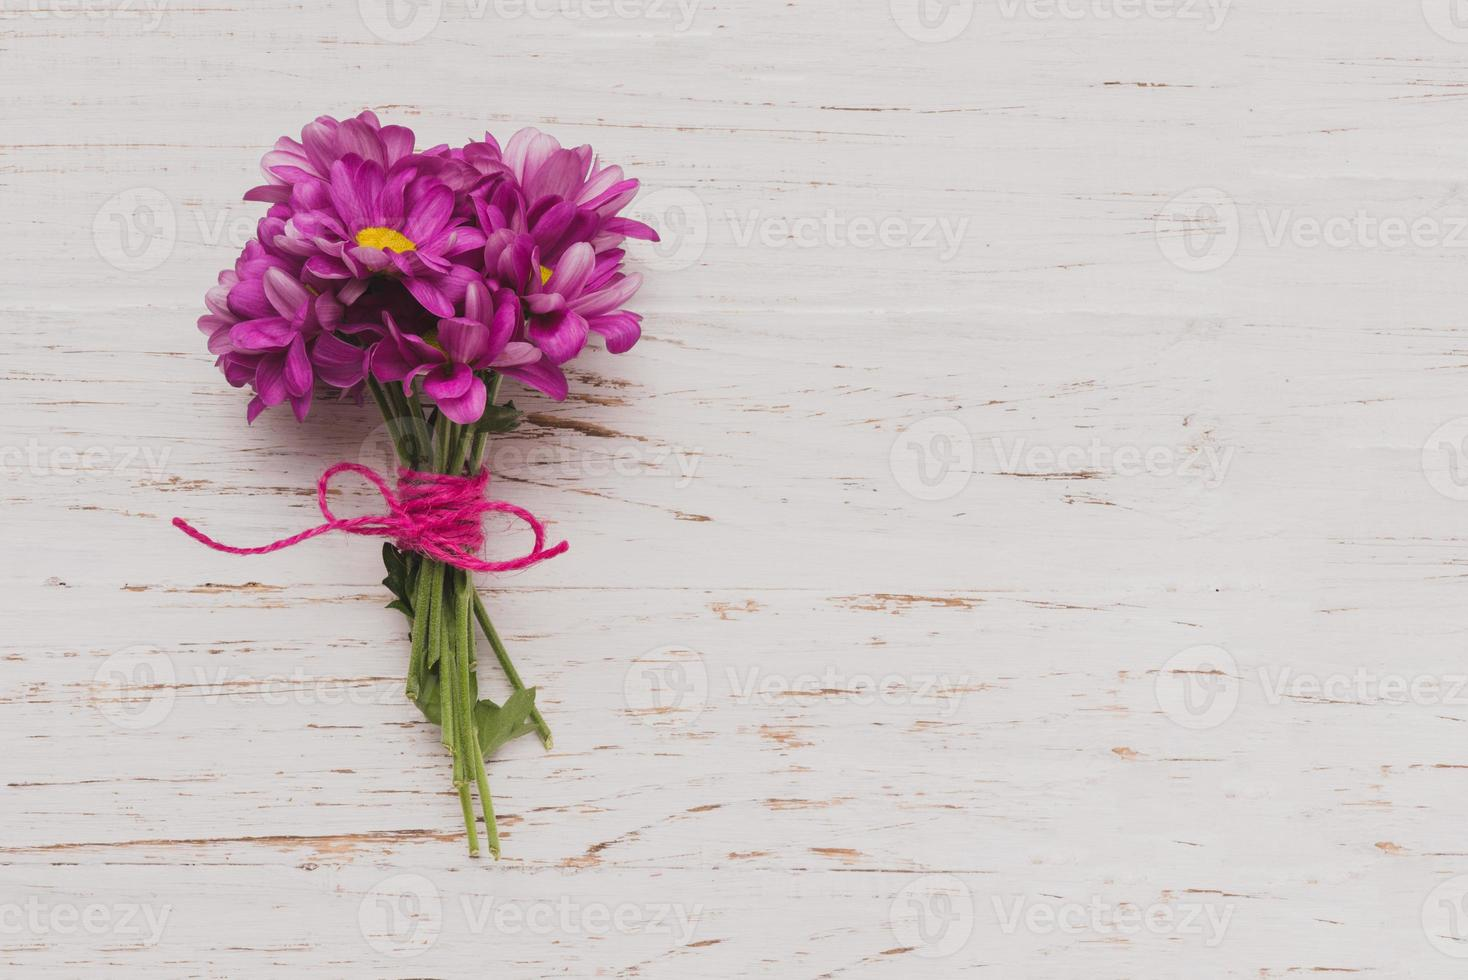 purple flowers tied white wooden surface. High quality and resolution beautiful photo concept